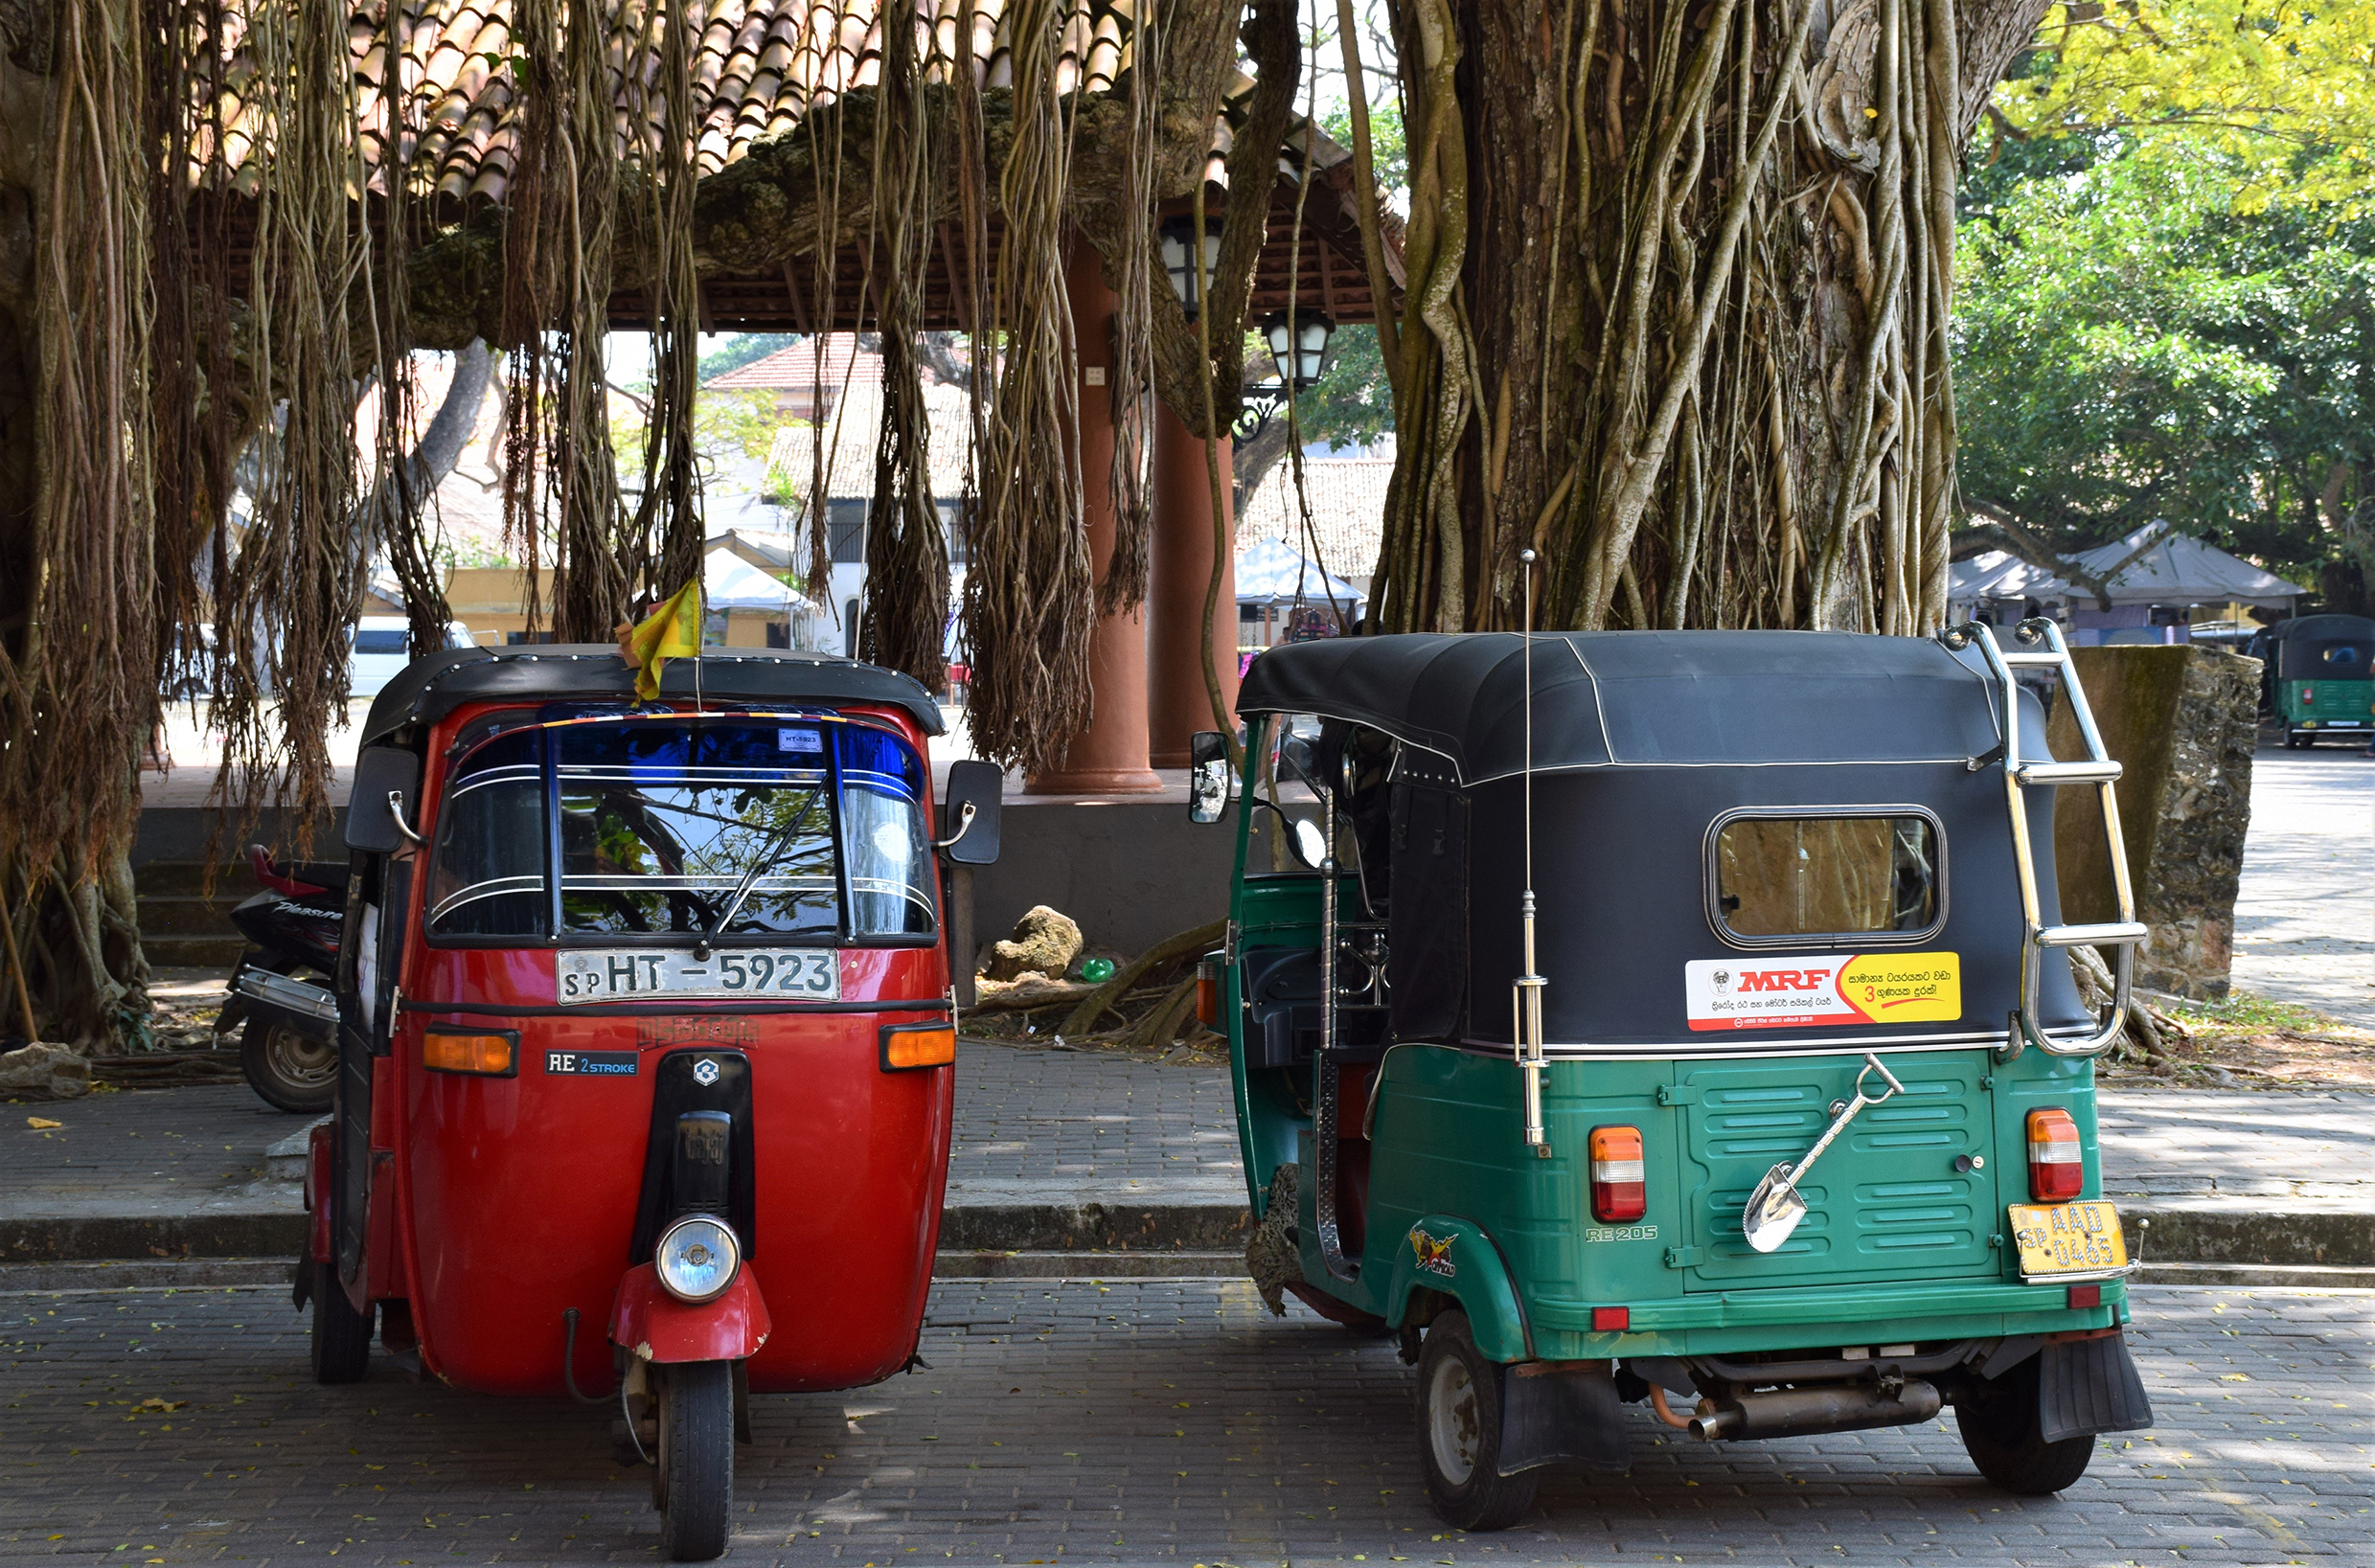 Tuk-tuk's are everywhere and will drop you off anywhere.